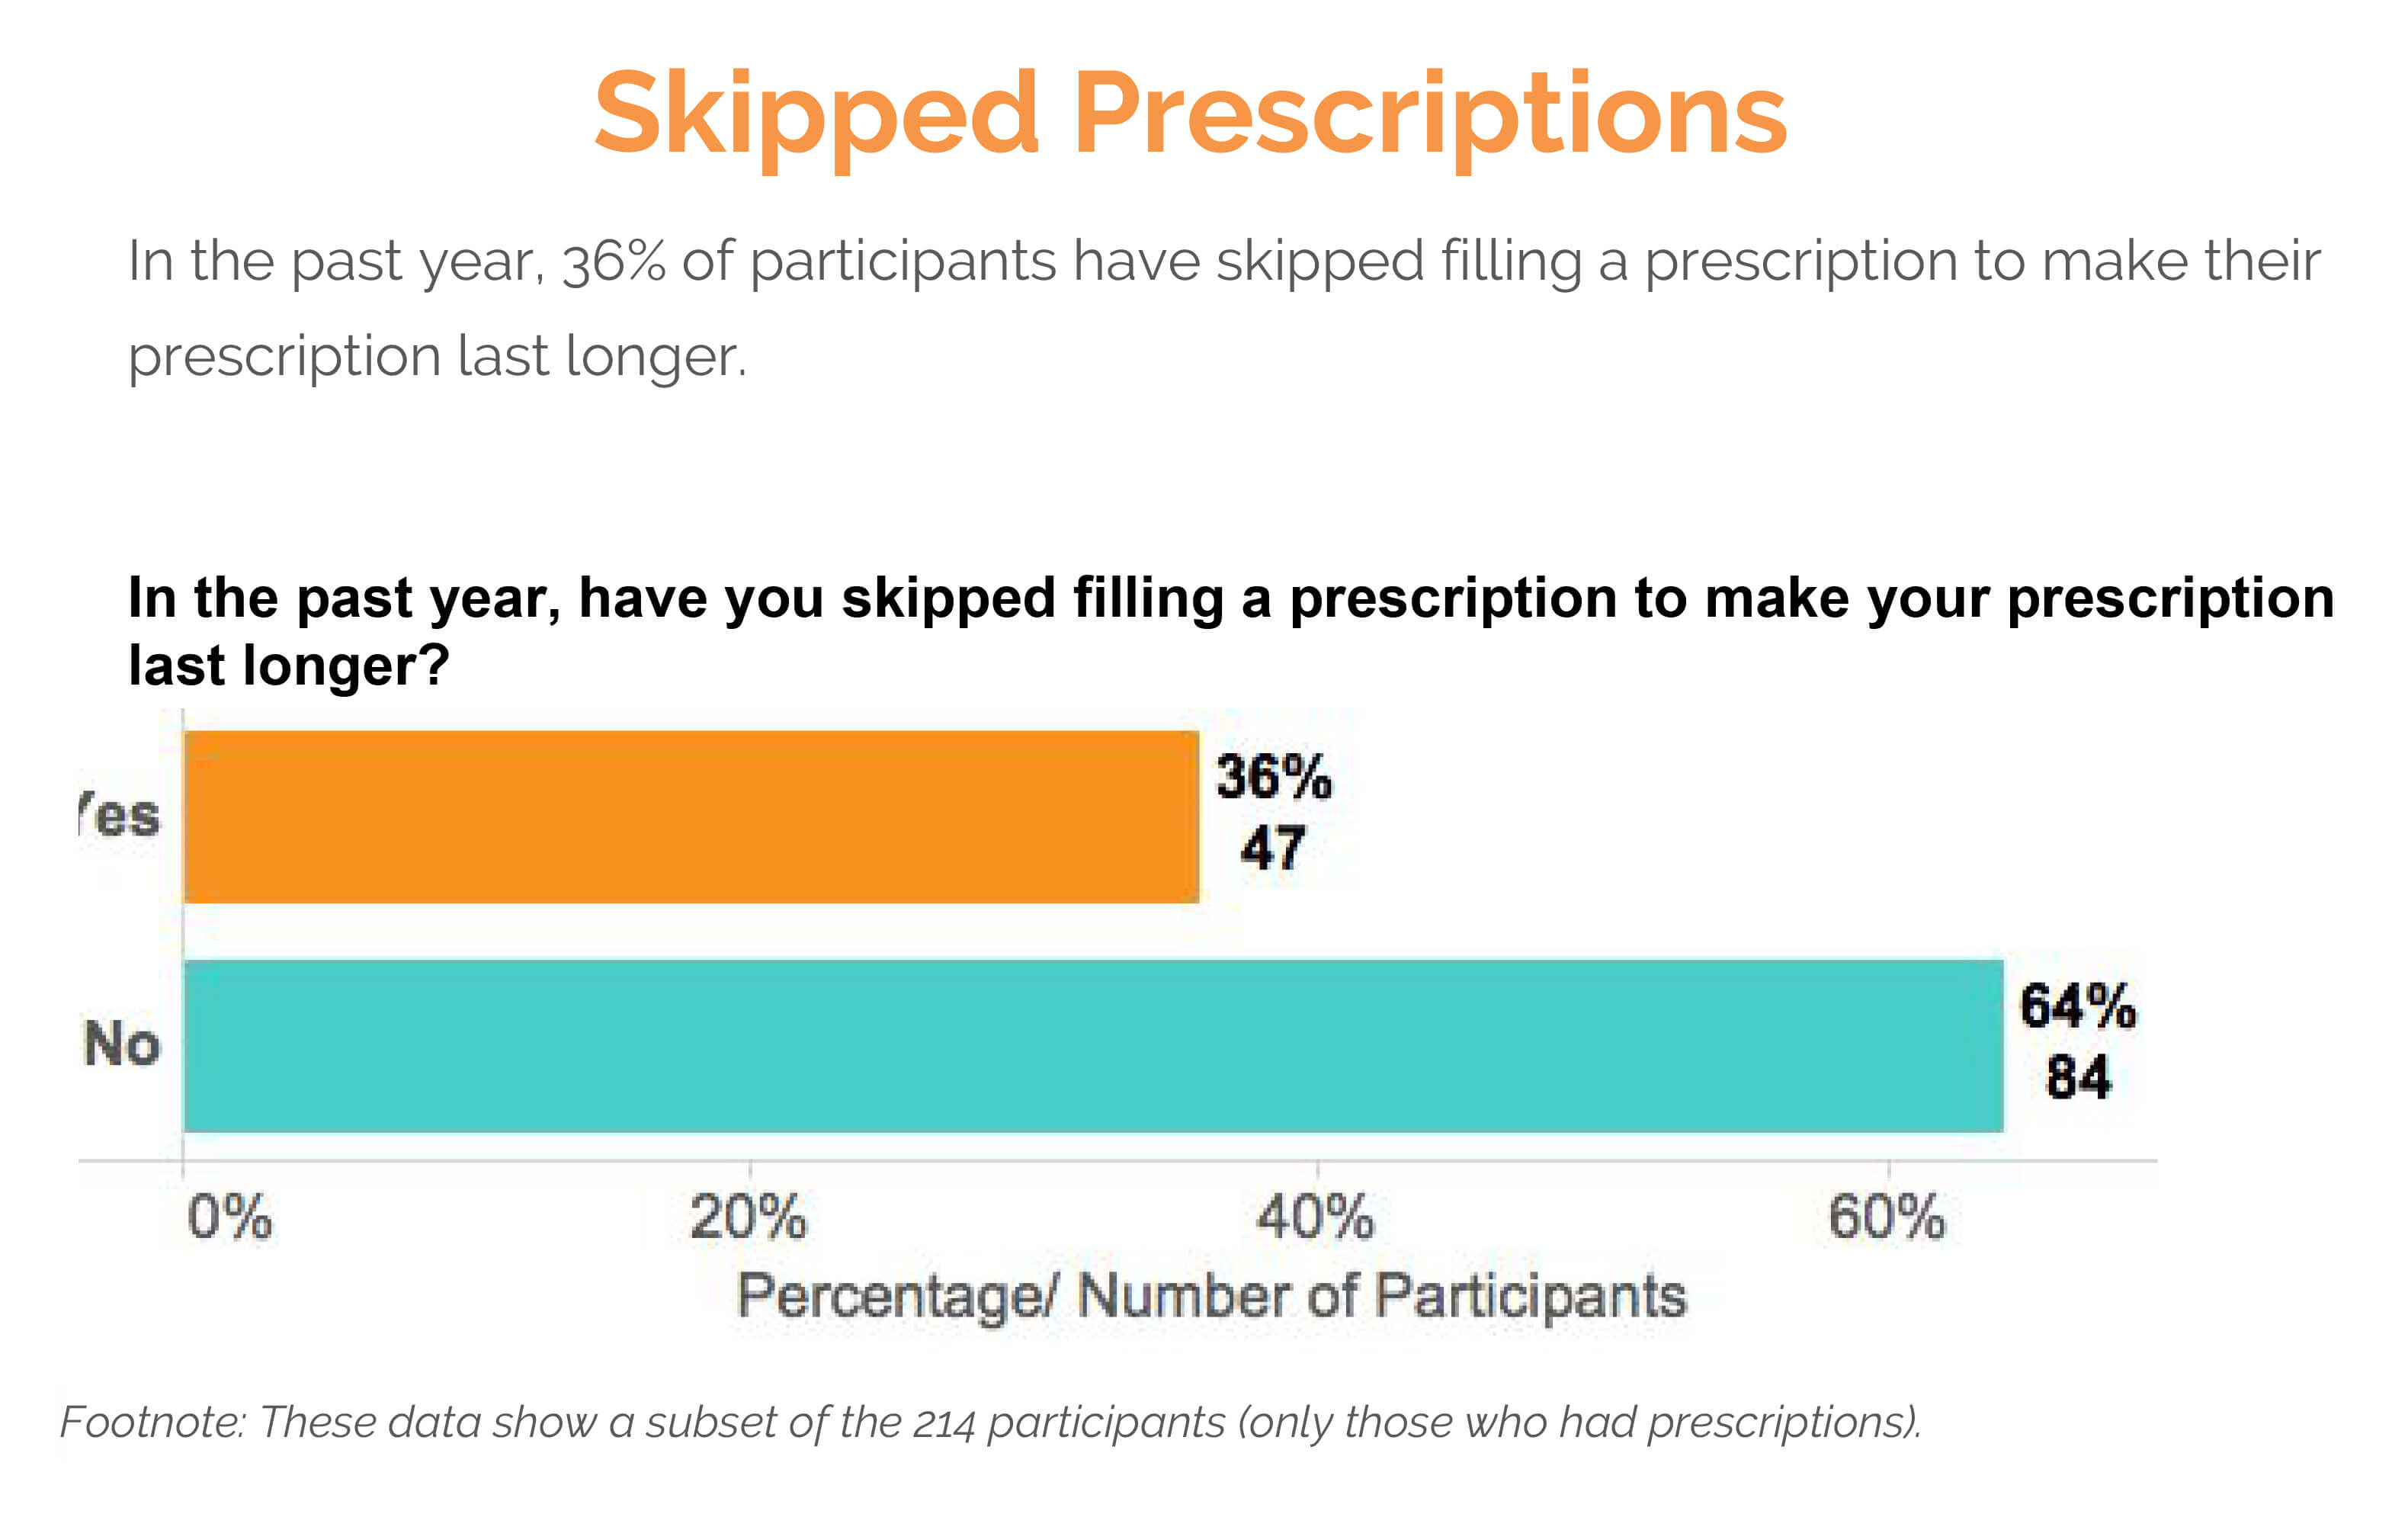 skipped prescriptions text survey results